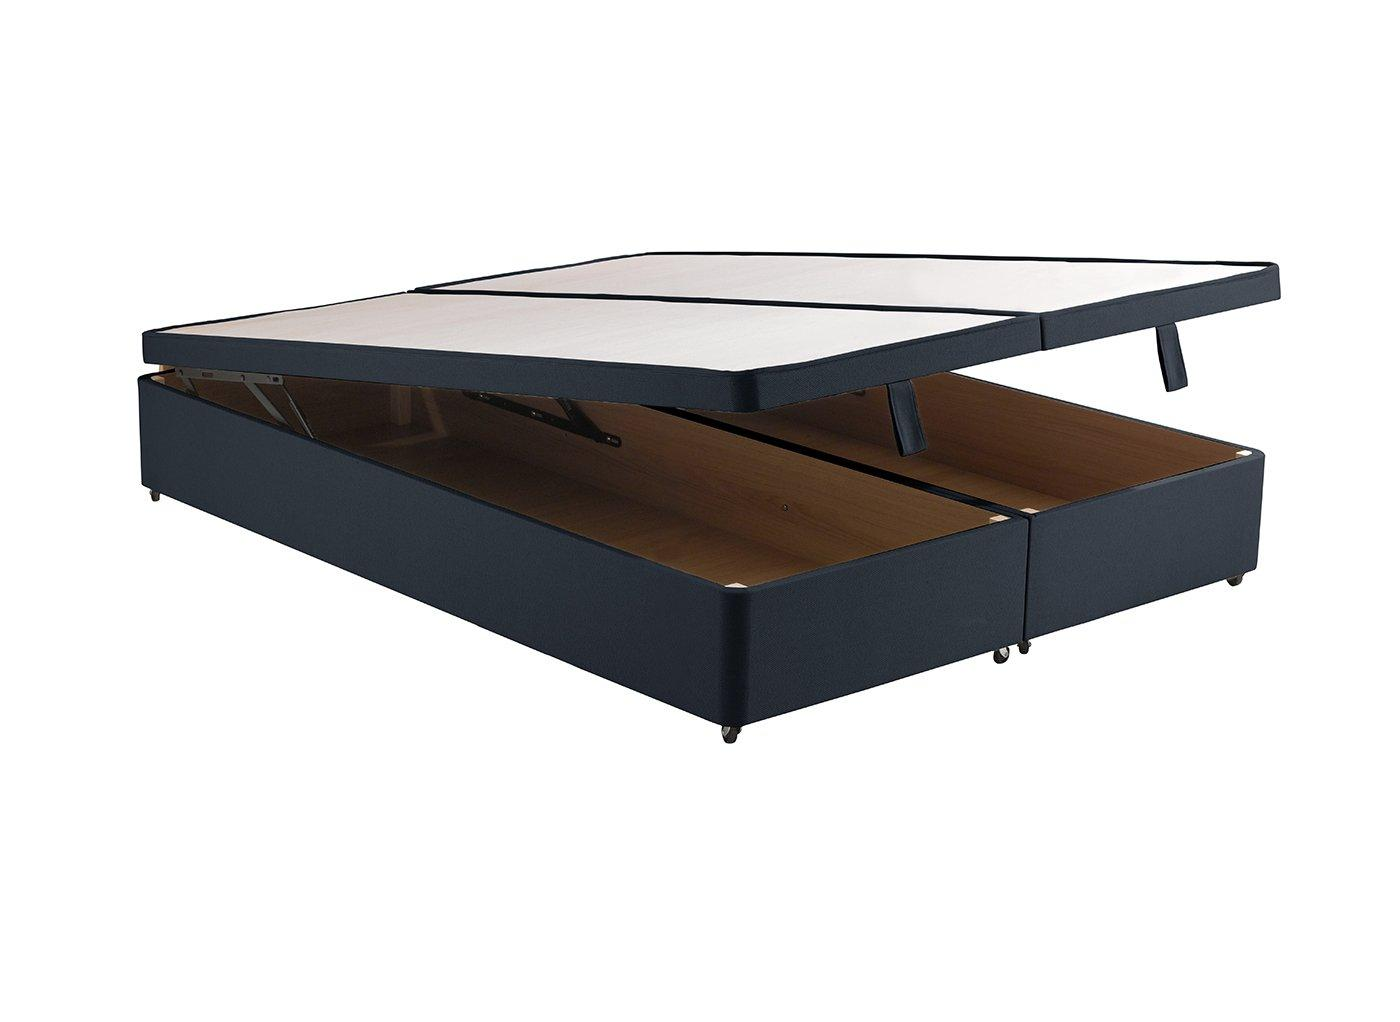 Classic Ottoman Base Only 6'0 Super king BLUE